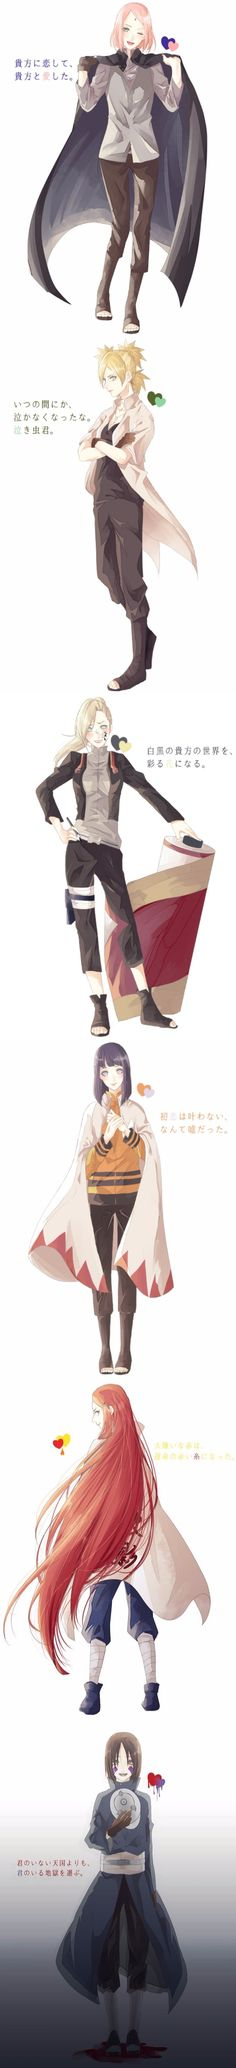 The girls in their man's clothes.  A while back I pinned the NaruHina one, but then I found SasuSaku, ShikaTema, SaiIno, MinaKushi, and ObiRin ones and had to add them! #naruto